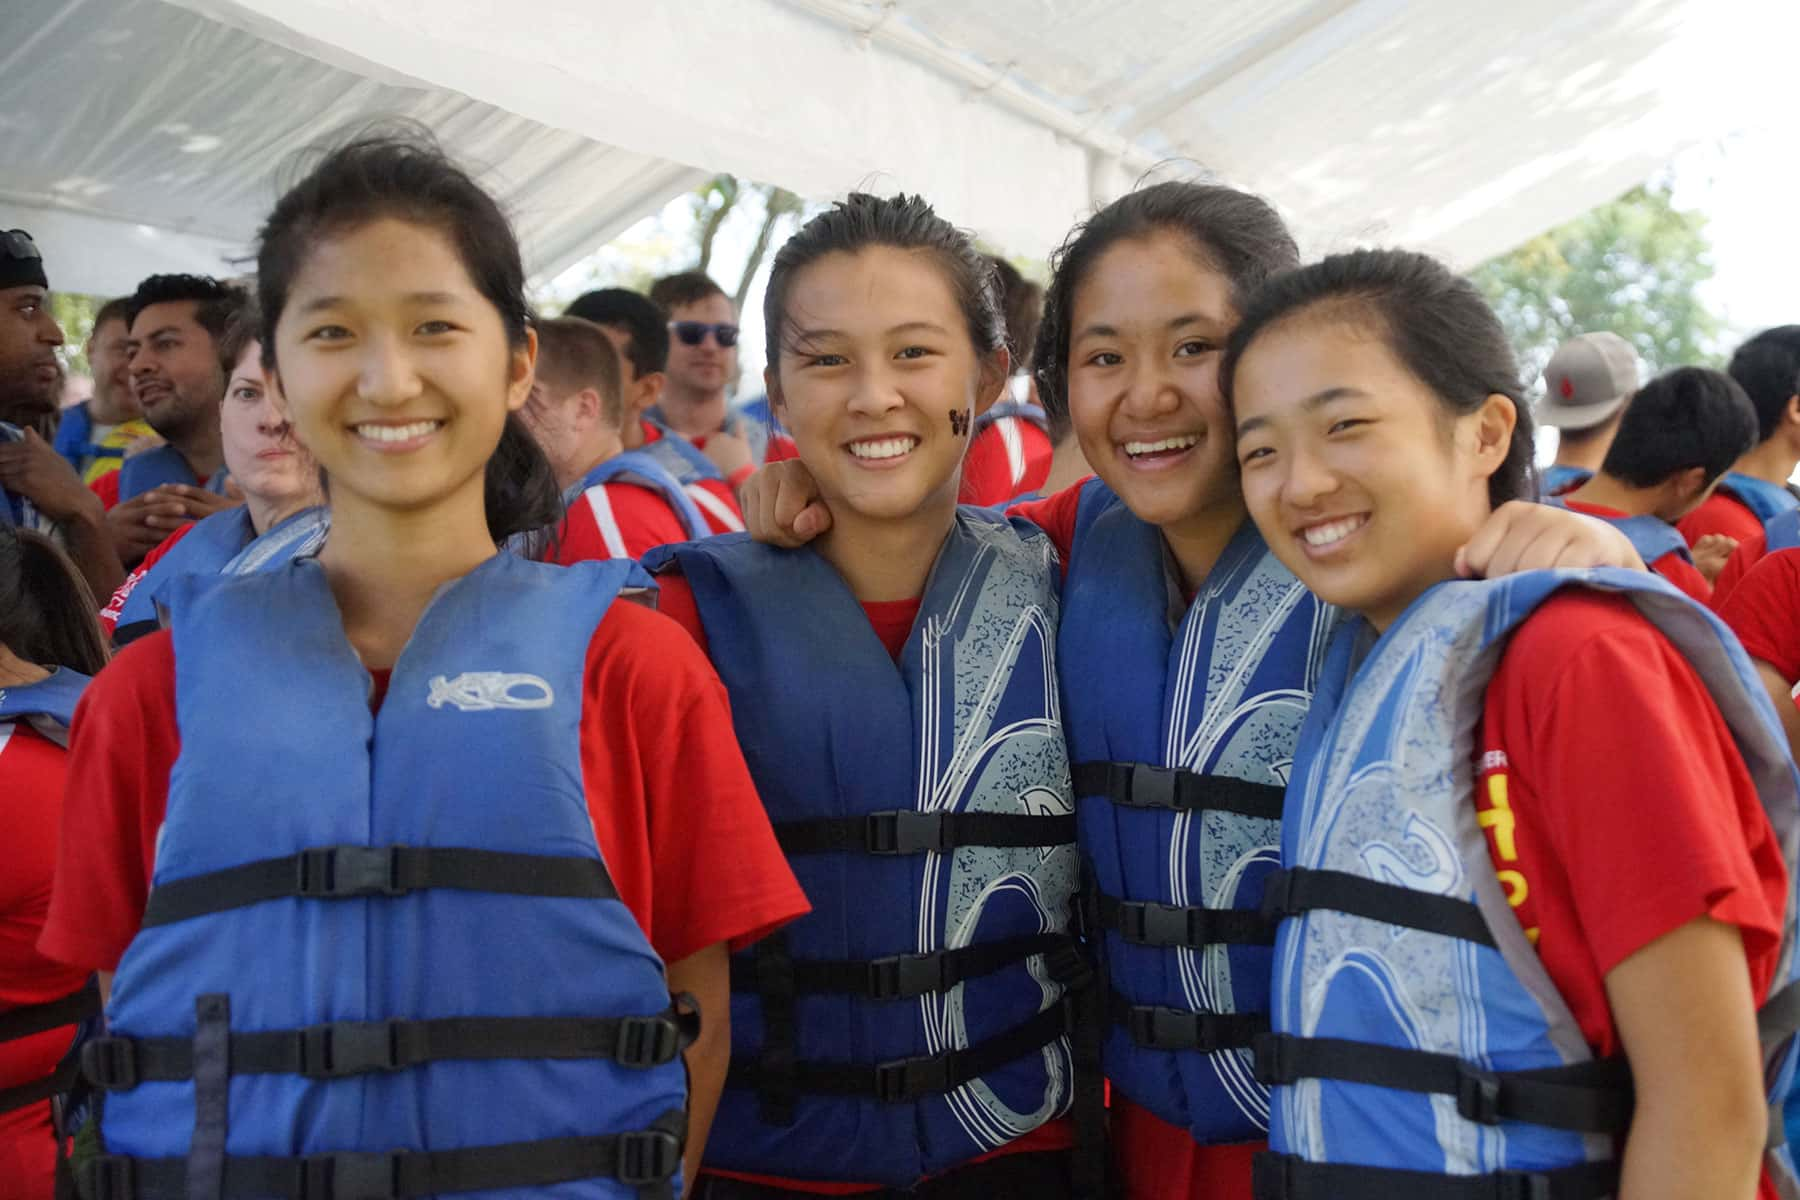 073016_DragonBoatRace_2441